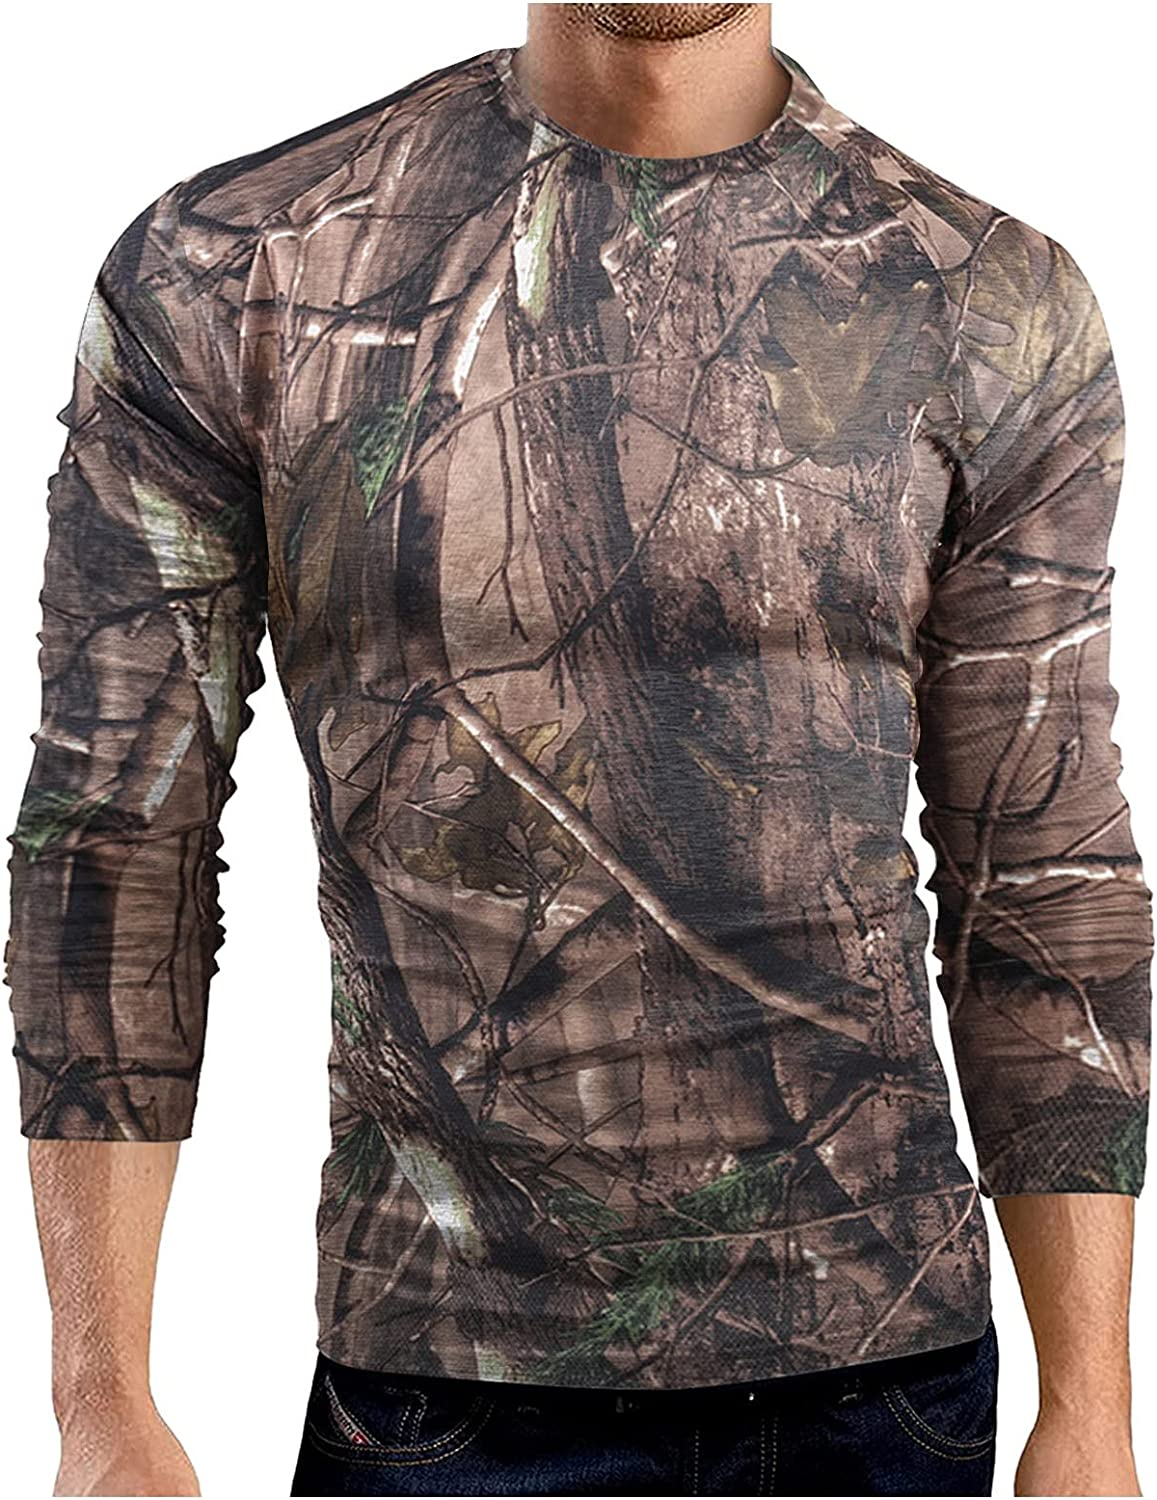 Huangse Mens Camouflage Short Sleeve Shirts Patriotic Tees Quick Dry Gym Athletic Workout Fitness Vintage Camo T-Shirts